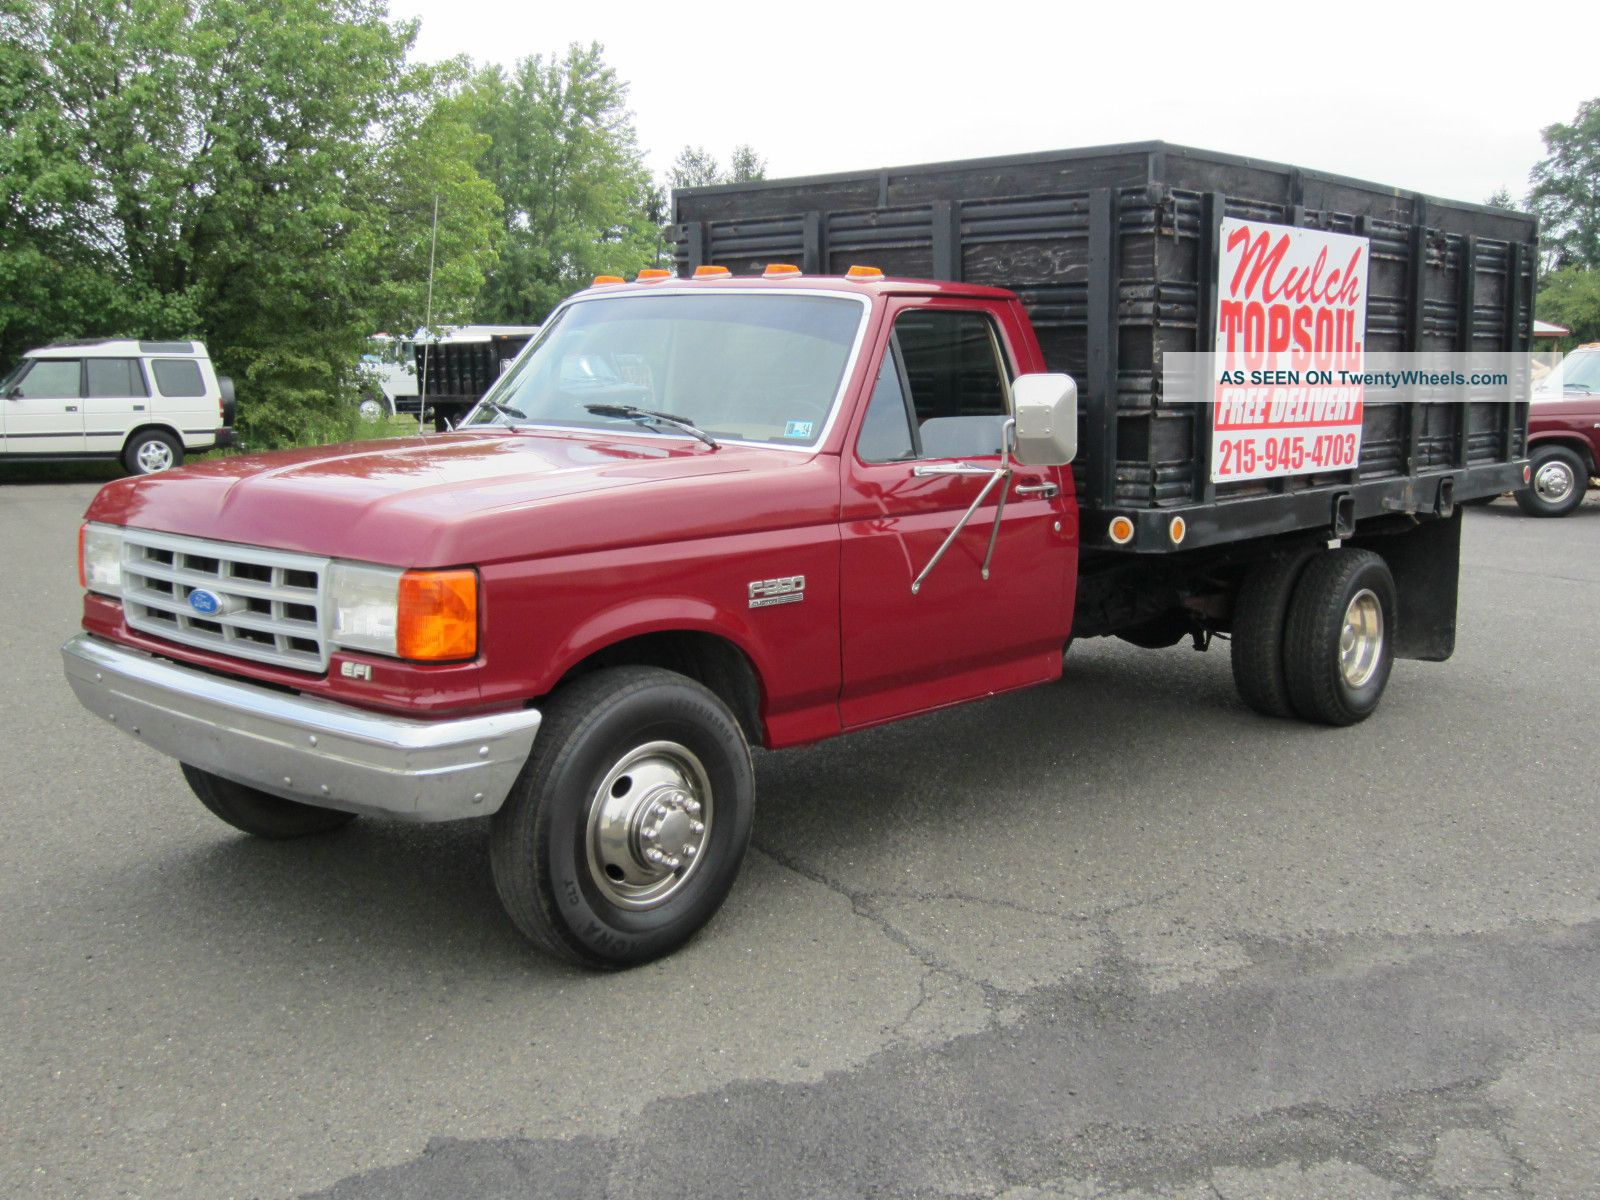 17564 Semi Trailer Dump Truck furthermore 488851734524416198 further 11670 1991 ford f 350 together with Skoda Zugmaschine moreover 04 Freightliner Fl70 Dump 76k Miles Auto. on semi truck dump trailers